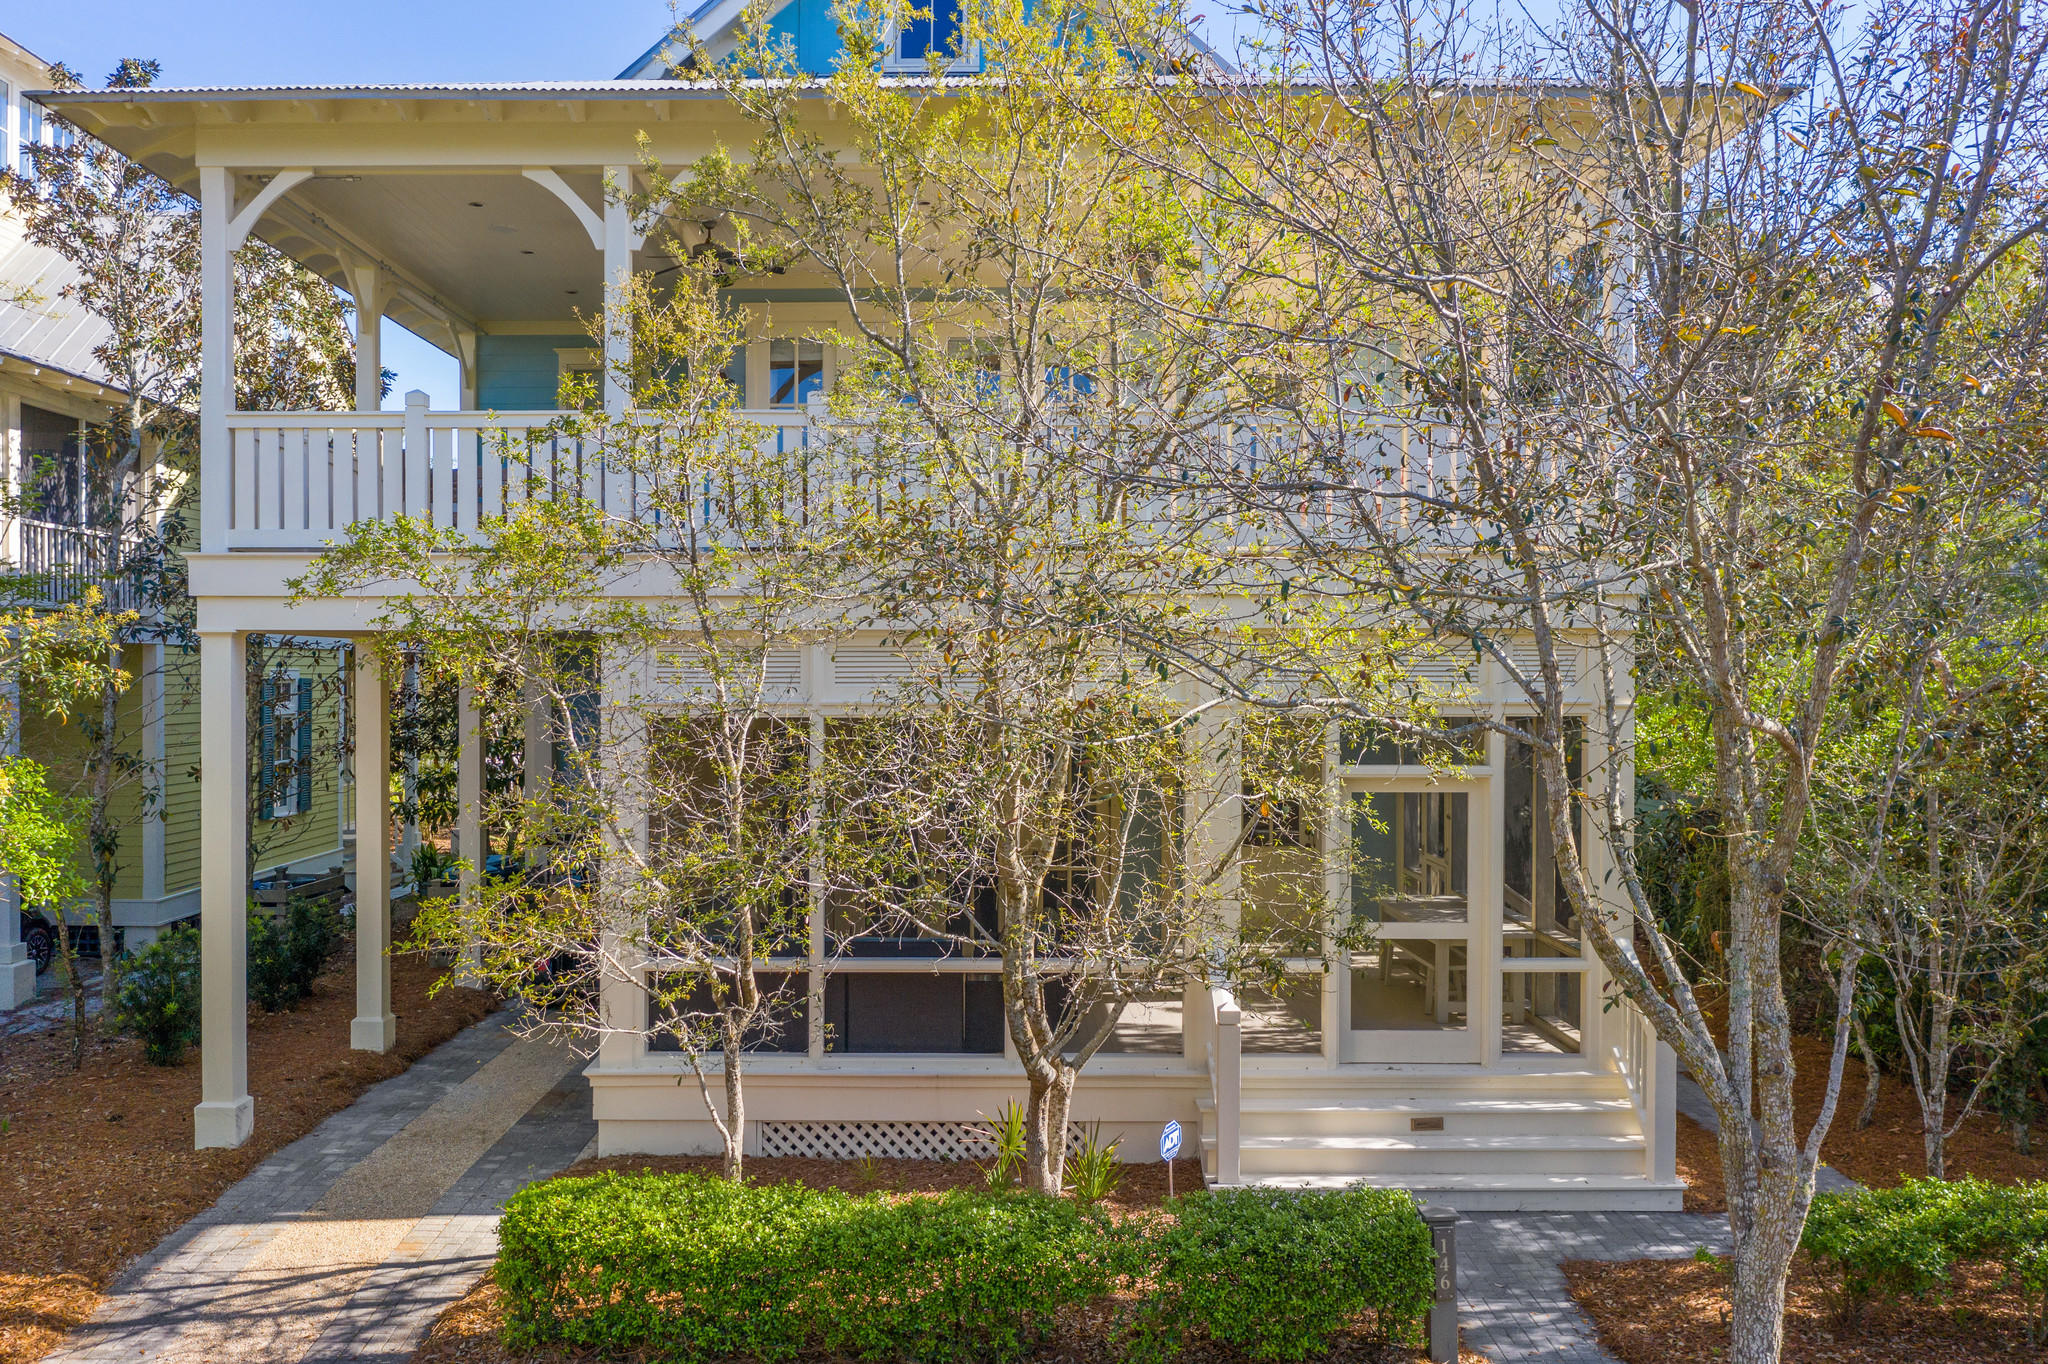 BEST LOCATION IN WATERCOLOR! Two blocks from the beach on a quiet street, overlooking tree-lined streets of Seaside, and a 360 view of Watercolor, Seaside, and most importantly, expansive views of the GULF! Featuring 5 bedrooms, 5 1/2 baths, a media room, an office, wet bar, and multiple large and cozy porches, a private back deck with gas fire pit and grill, and THE ultimate ROOF TOP PATIO perfect for sunrise, sunset parties and everything in between.  Watch boats come in, fireworks all the way from PCB to Destin....the VIEW is THAT spectacular.  One of the highest rooftops in all of Seaside or Watercolor! This house has never been rented, one owner, however, the rental properties on this street command some of the highest rents in Watercolor. This home comes furnished (See list of Exclusions), all the interiors are new and pristine! The interiors were designed by Beau Interiors. The kitchen is a masterpiece, with a commercial size Subzero frig, Wolf cooktop and oven, and island that seats 7. The cabinets are custom-made in England by Smallbone of England. Both the living and dining spaces are large and accommodate a crowd. There is a downstairs king size bedroom and bath, large laundry room. New Pella windows, renovations to the Kitchen & Baths and flooring in 2019,  HVAC replaced in 2019 and more!  Buyer to verify all data and dimensions.